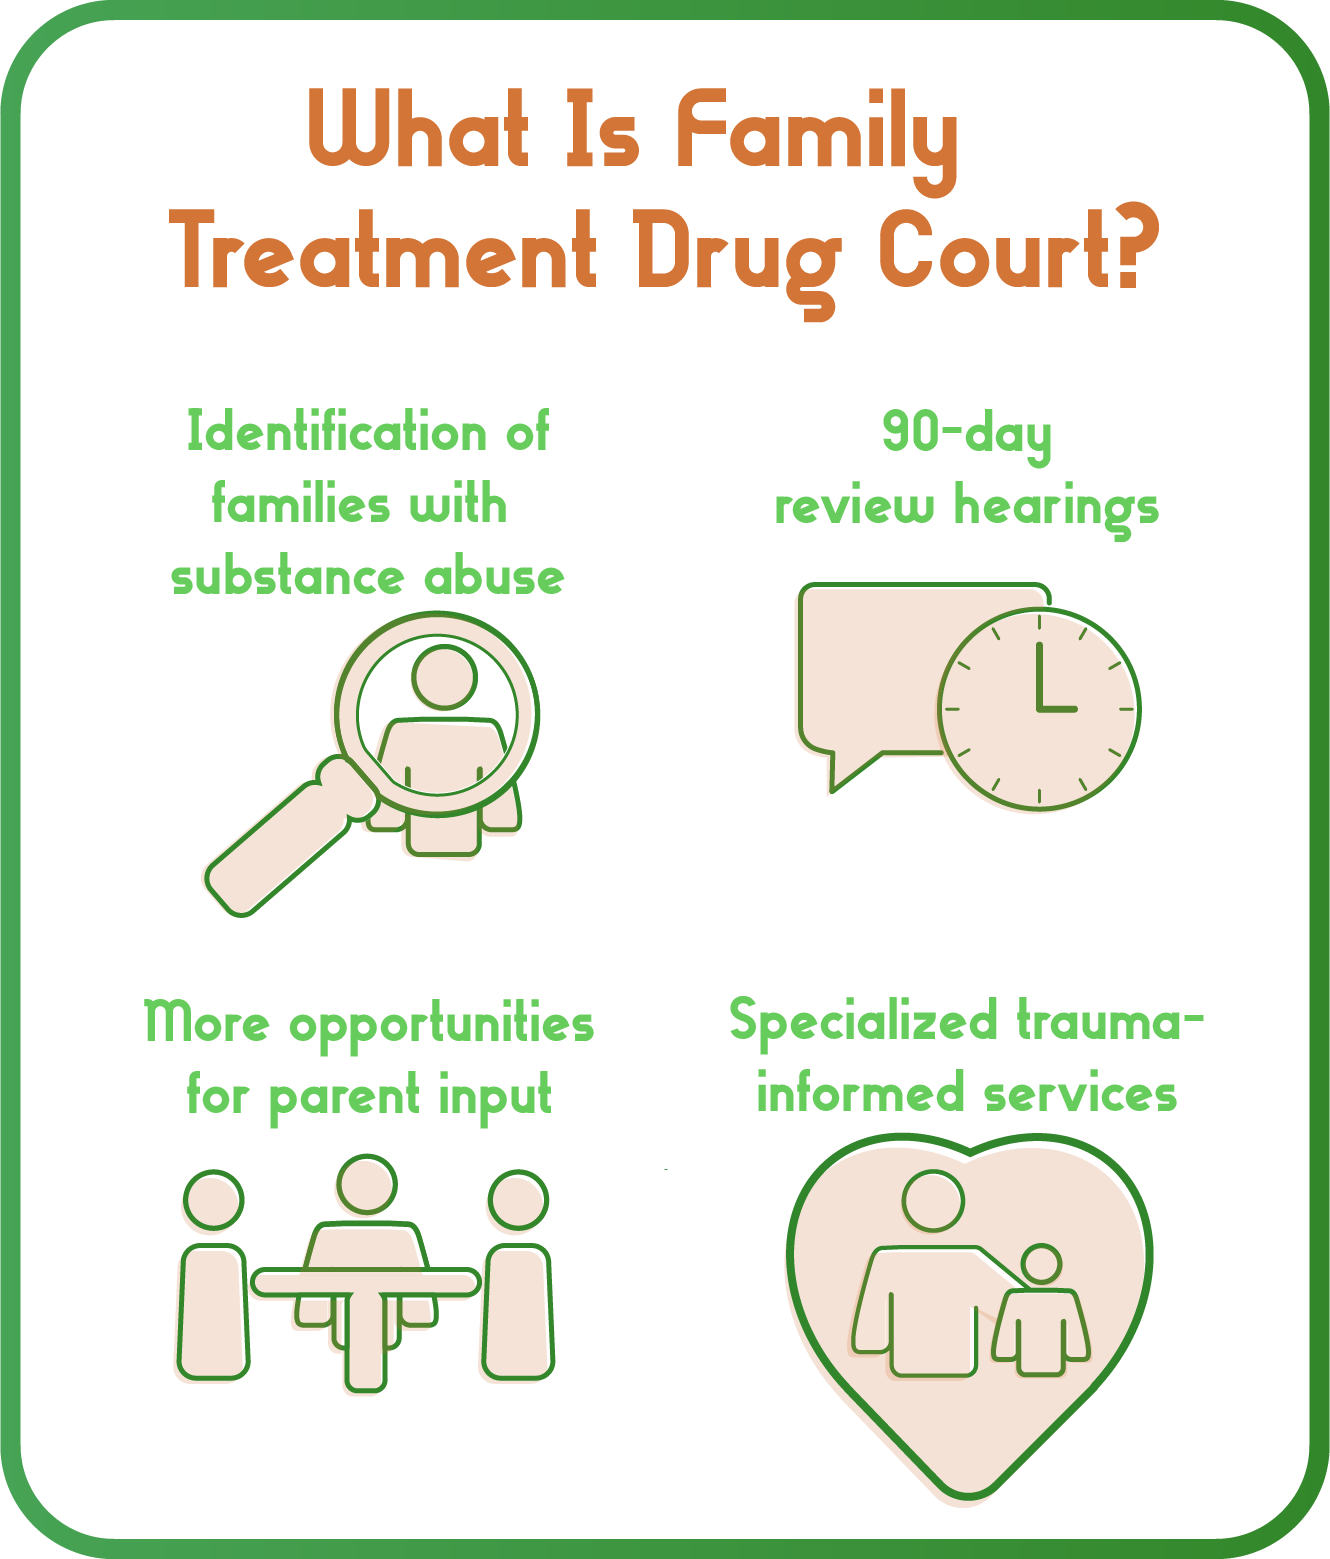 The core components of the Family Treatment Drug Court Track are: 90-day review hearings, monthly team meetings, identification of families with substance abuse, and specialized trauma-informed services.